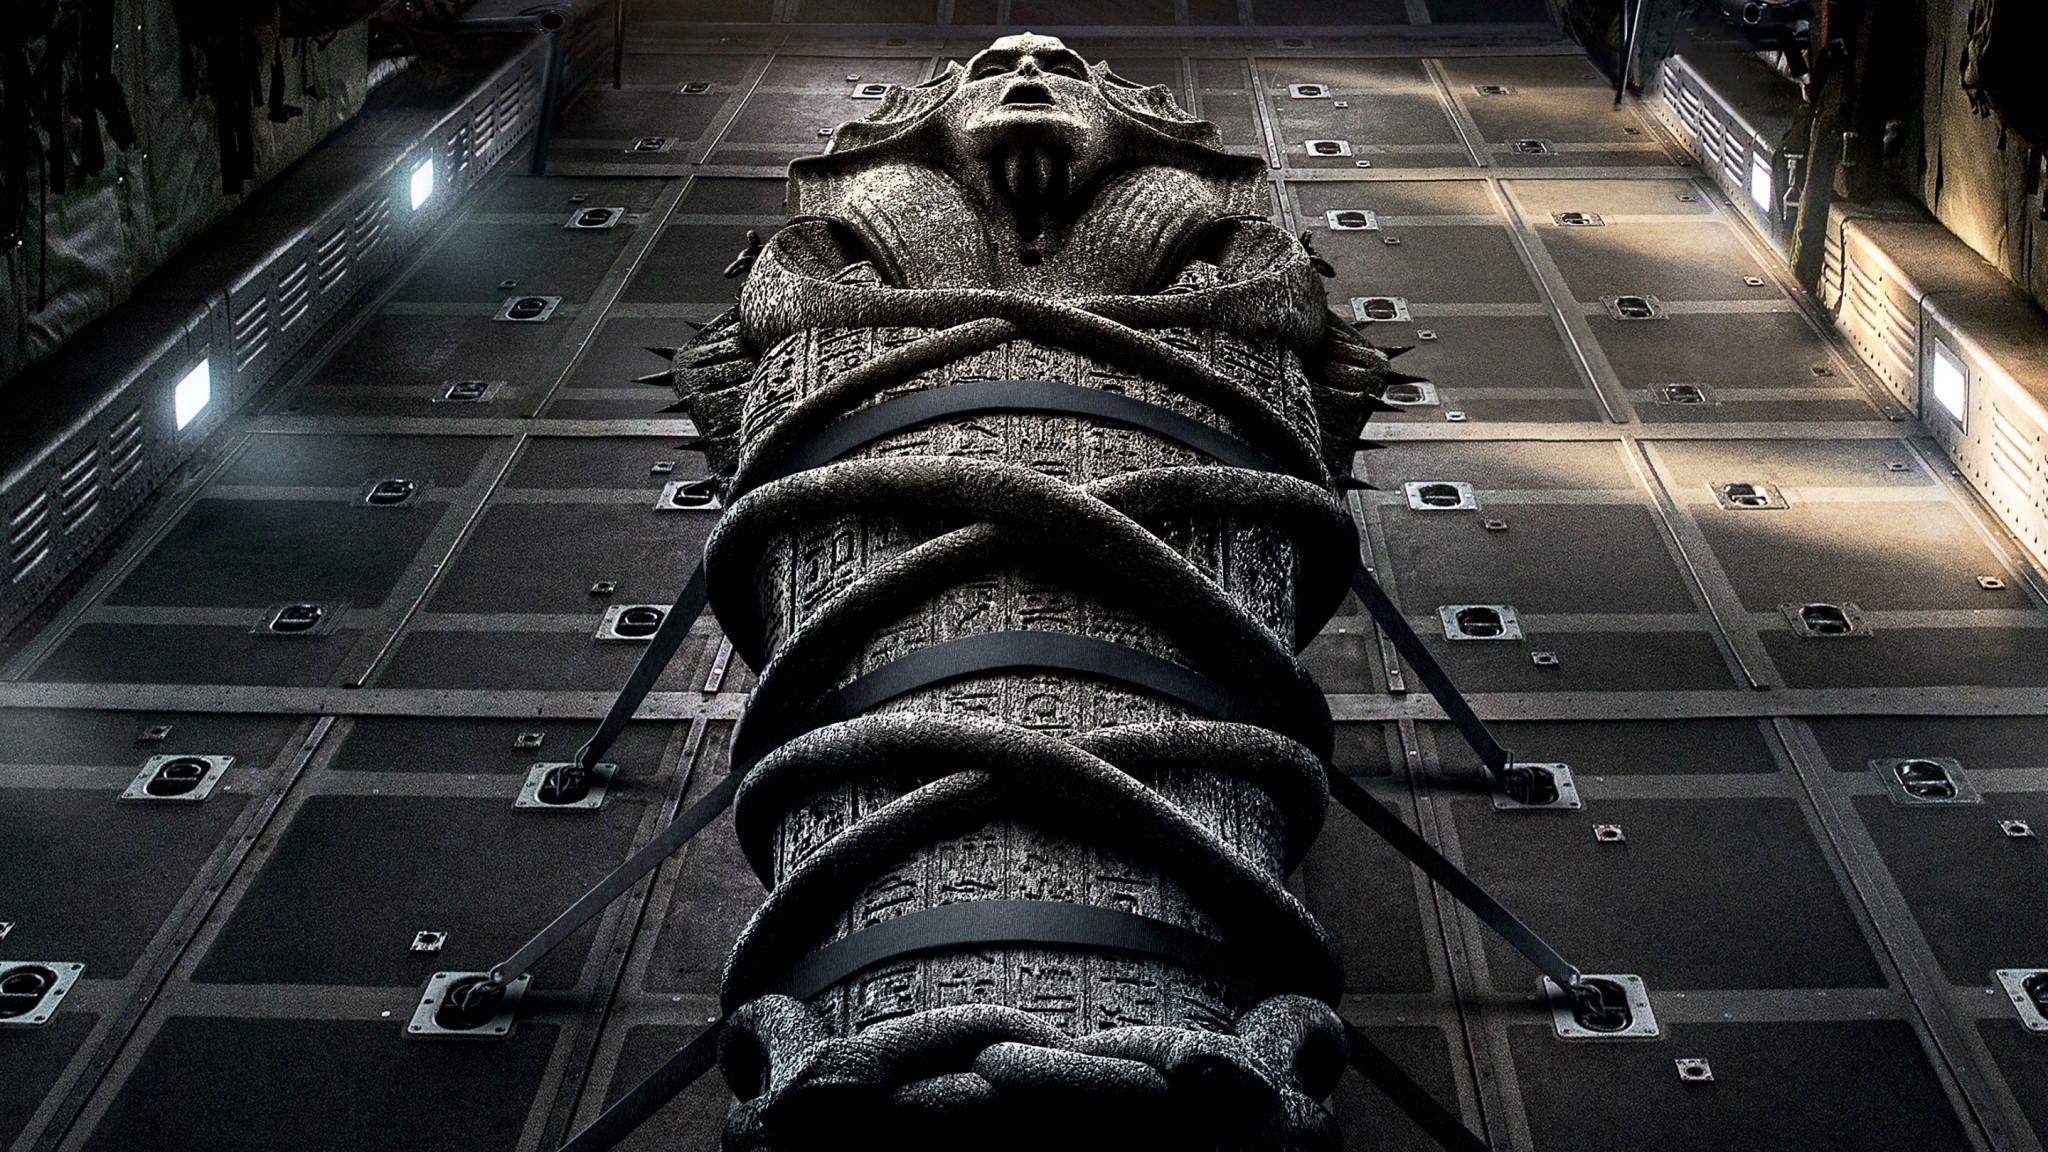 The Mummy 2017 Review Hollywood Movies Review Online For You